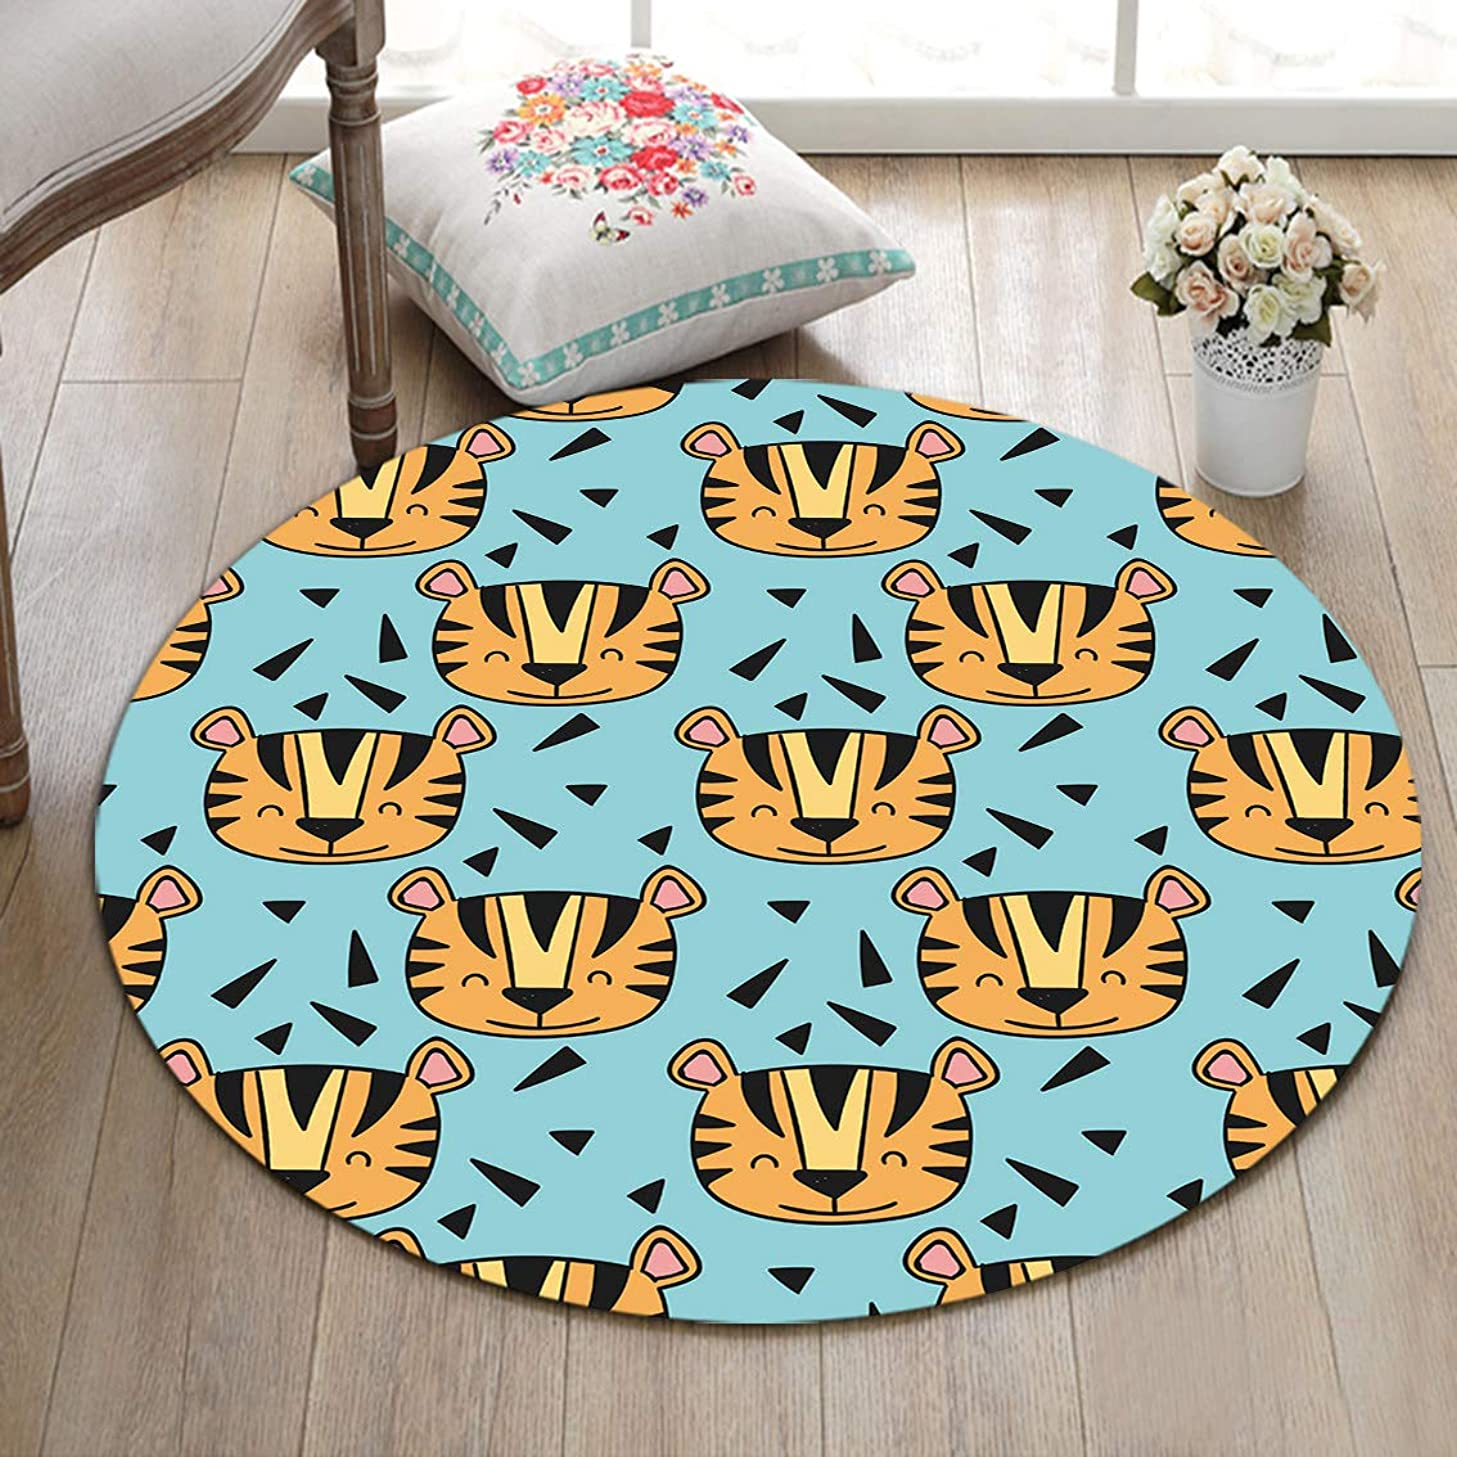 LB Cute Cartoon Tiger Round Rug Mat for Living Room Bedroom, Animal Tiger Play Mat Kids Room Nursery Room Decor Teepee Mat, Easy Clean Soft Flannel Surface Mat, 4 Ft Diameter